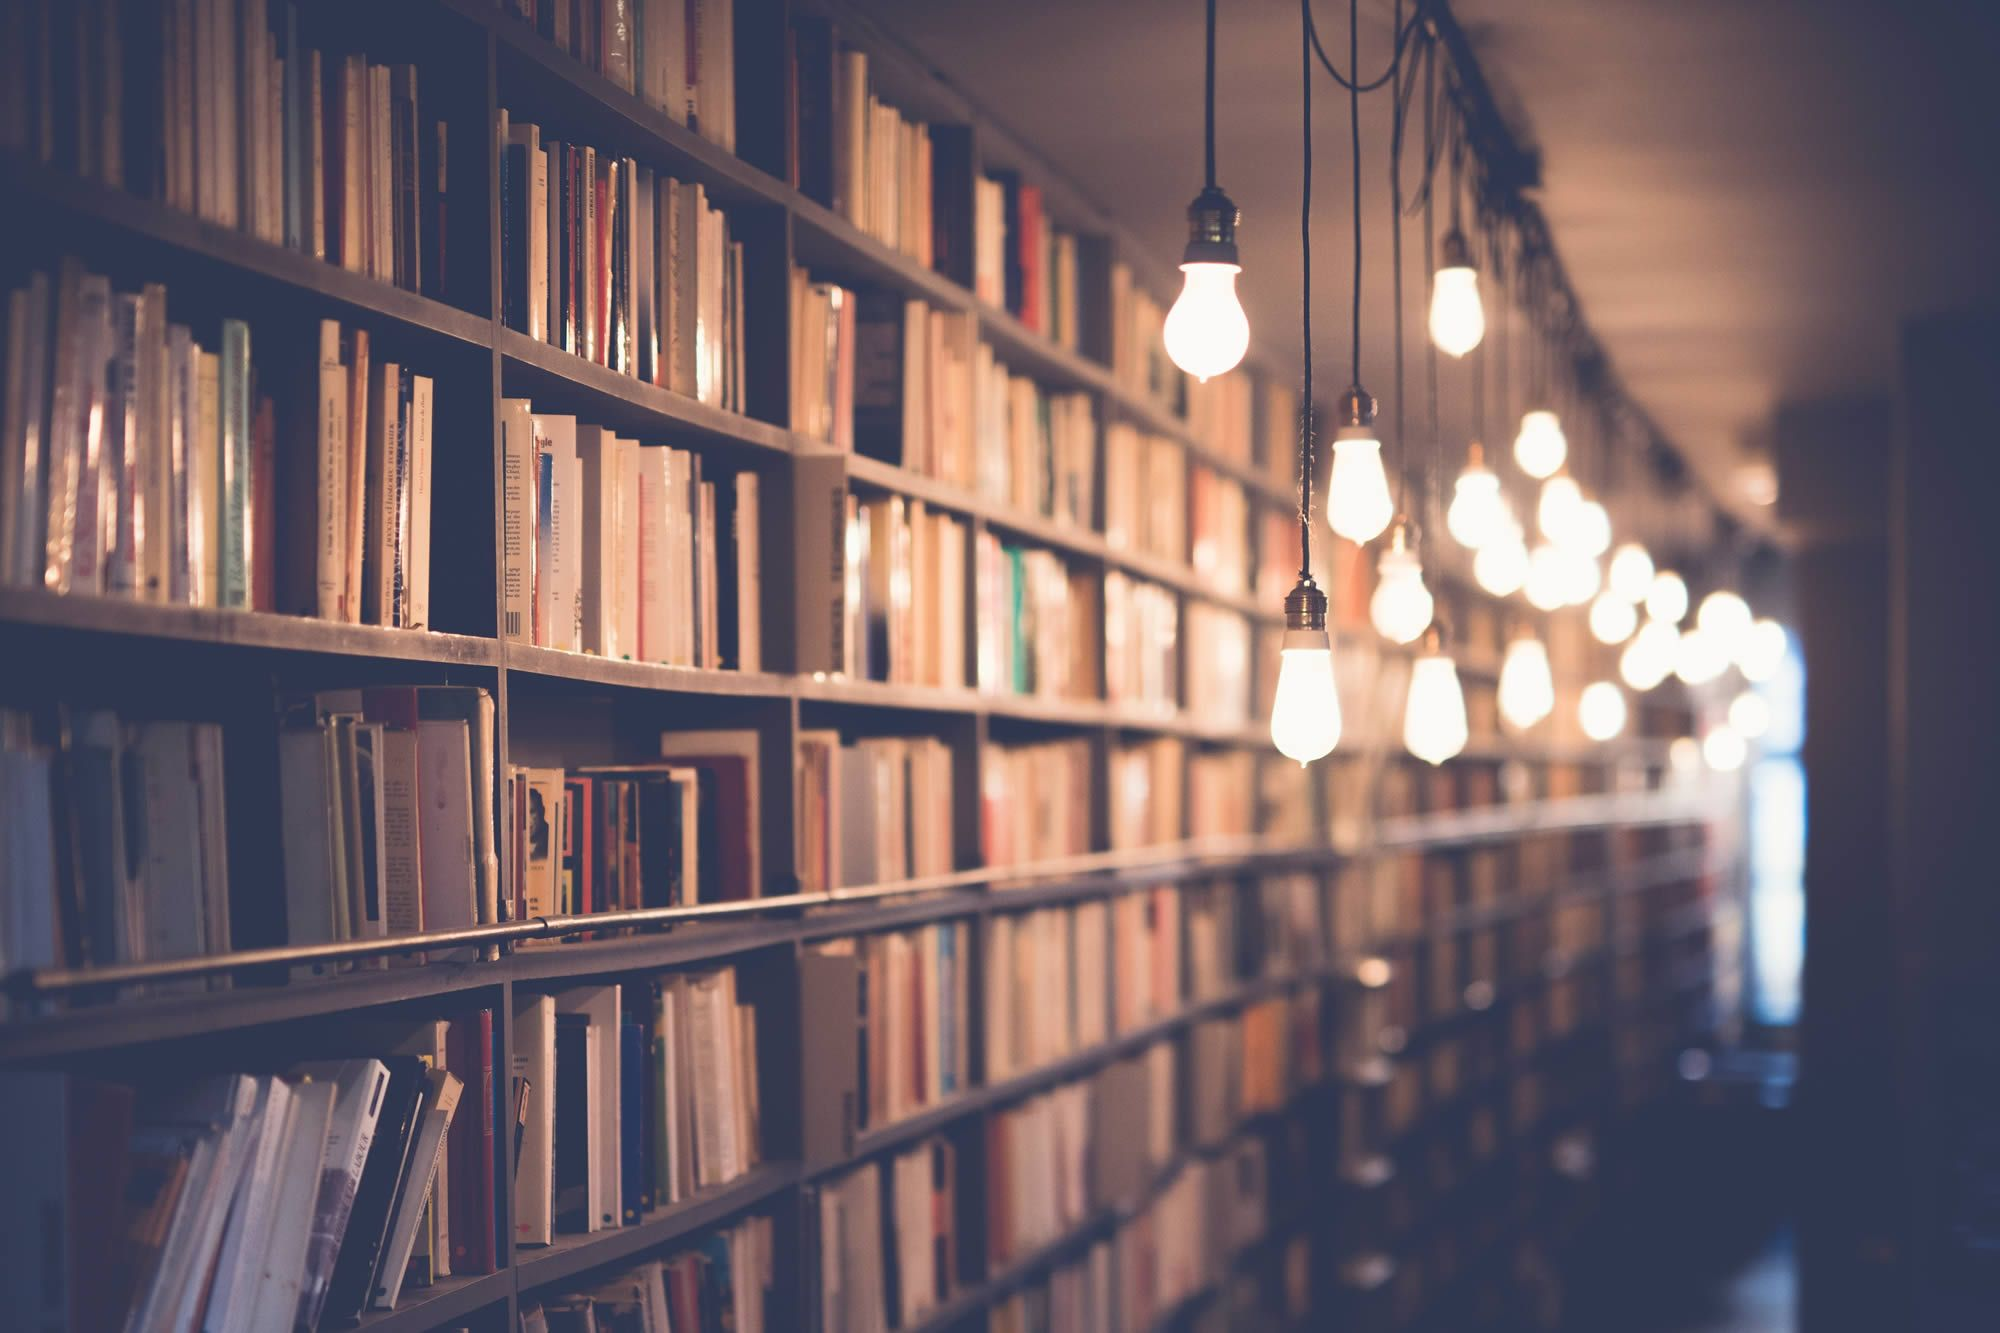 5 Skills To Learn In Law School That Will Help You Succeed In Your Career The Unbillable Life Best Self Help Books Life Changing Books Books